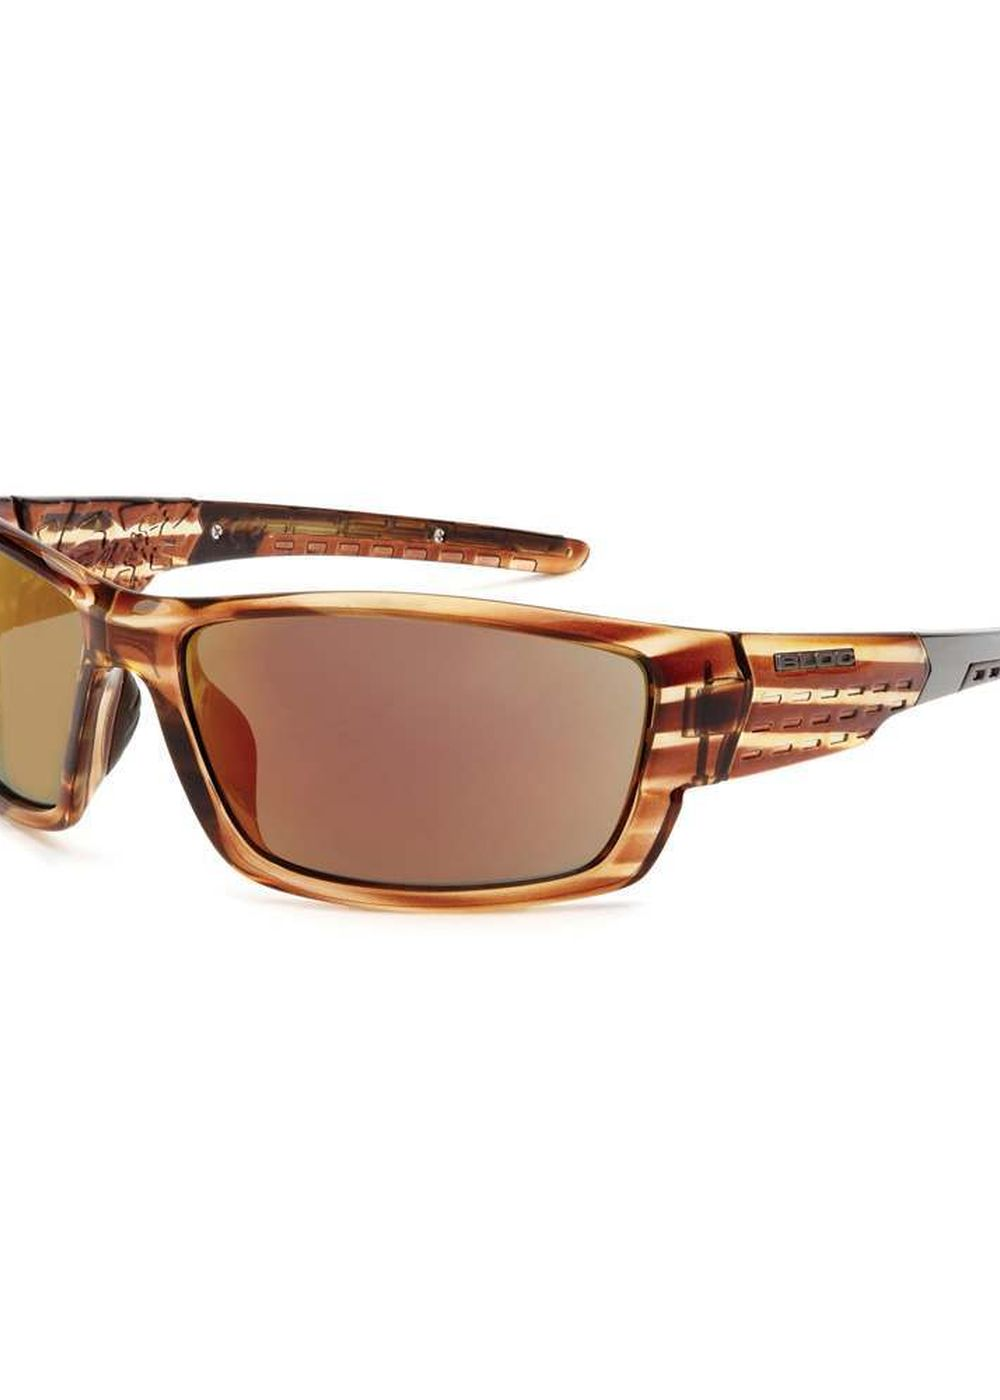 BLOC DELTA SUNGLASSES Crystal Brown/Red